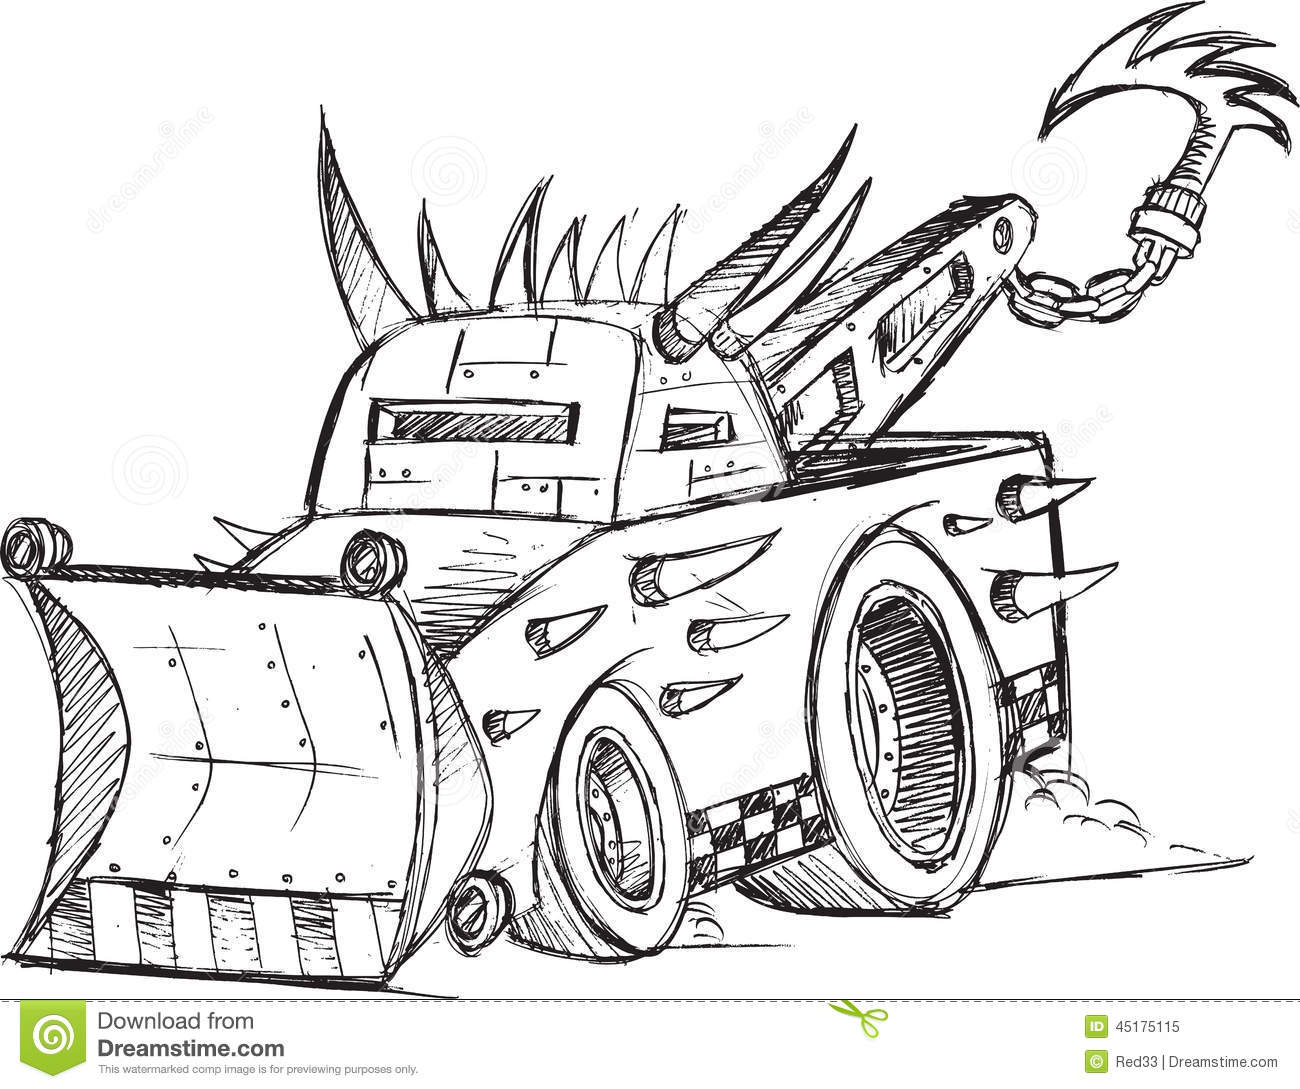 Armored Tow Truck Vehicle Sketch Stock Vector